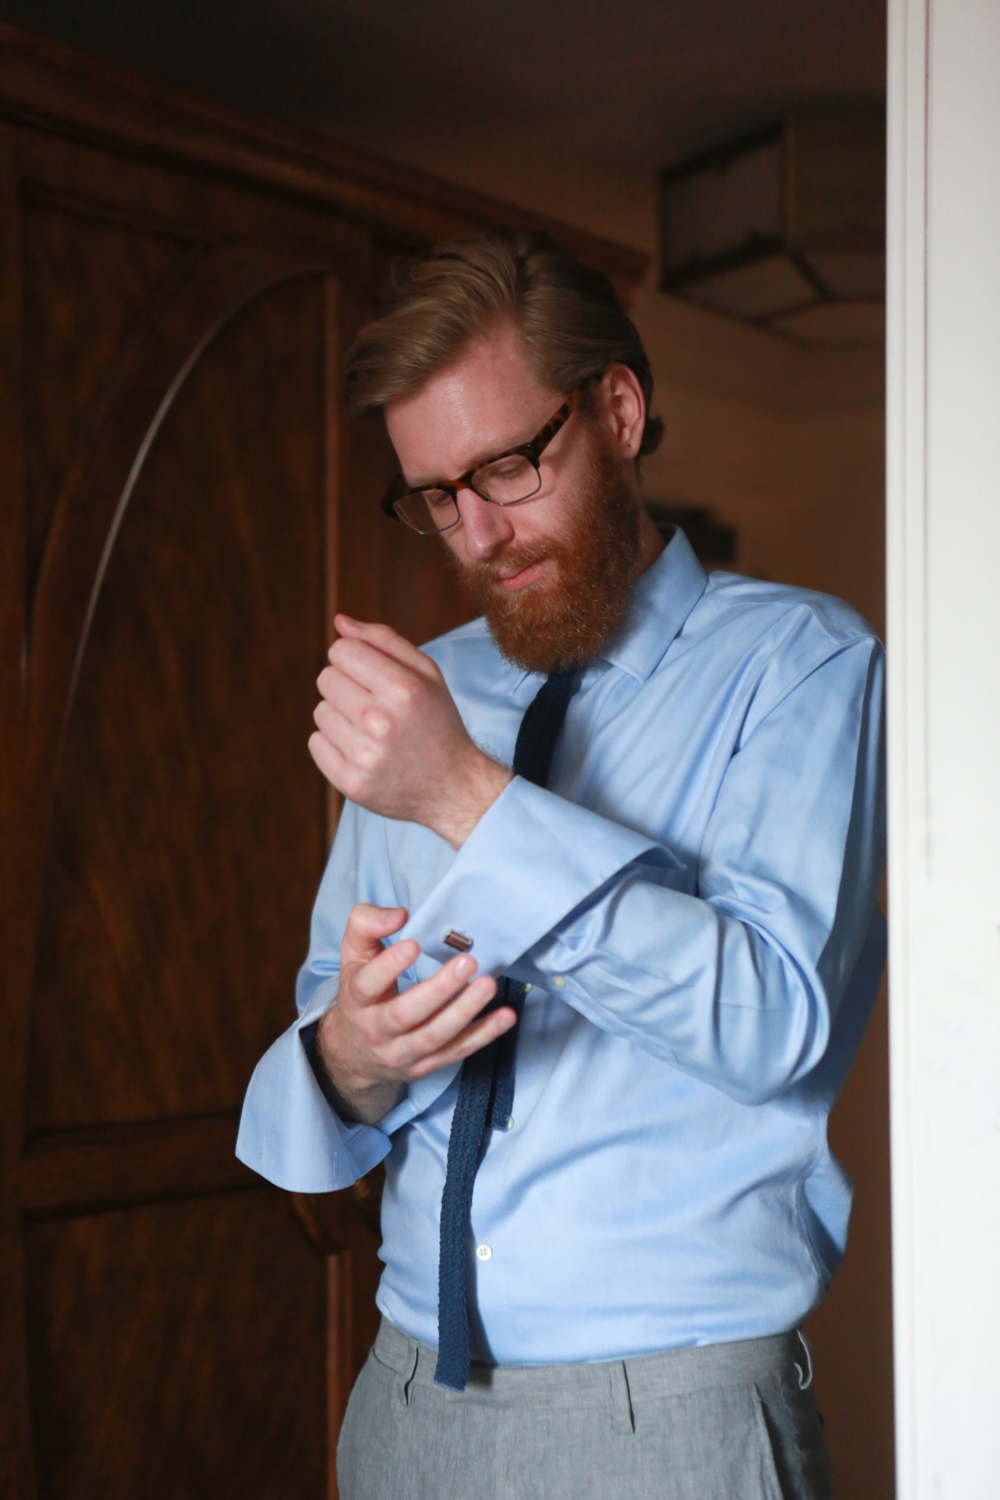 Groom getting ready for elopement in New York City